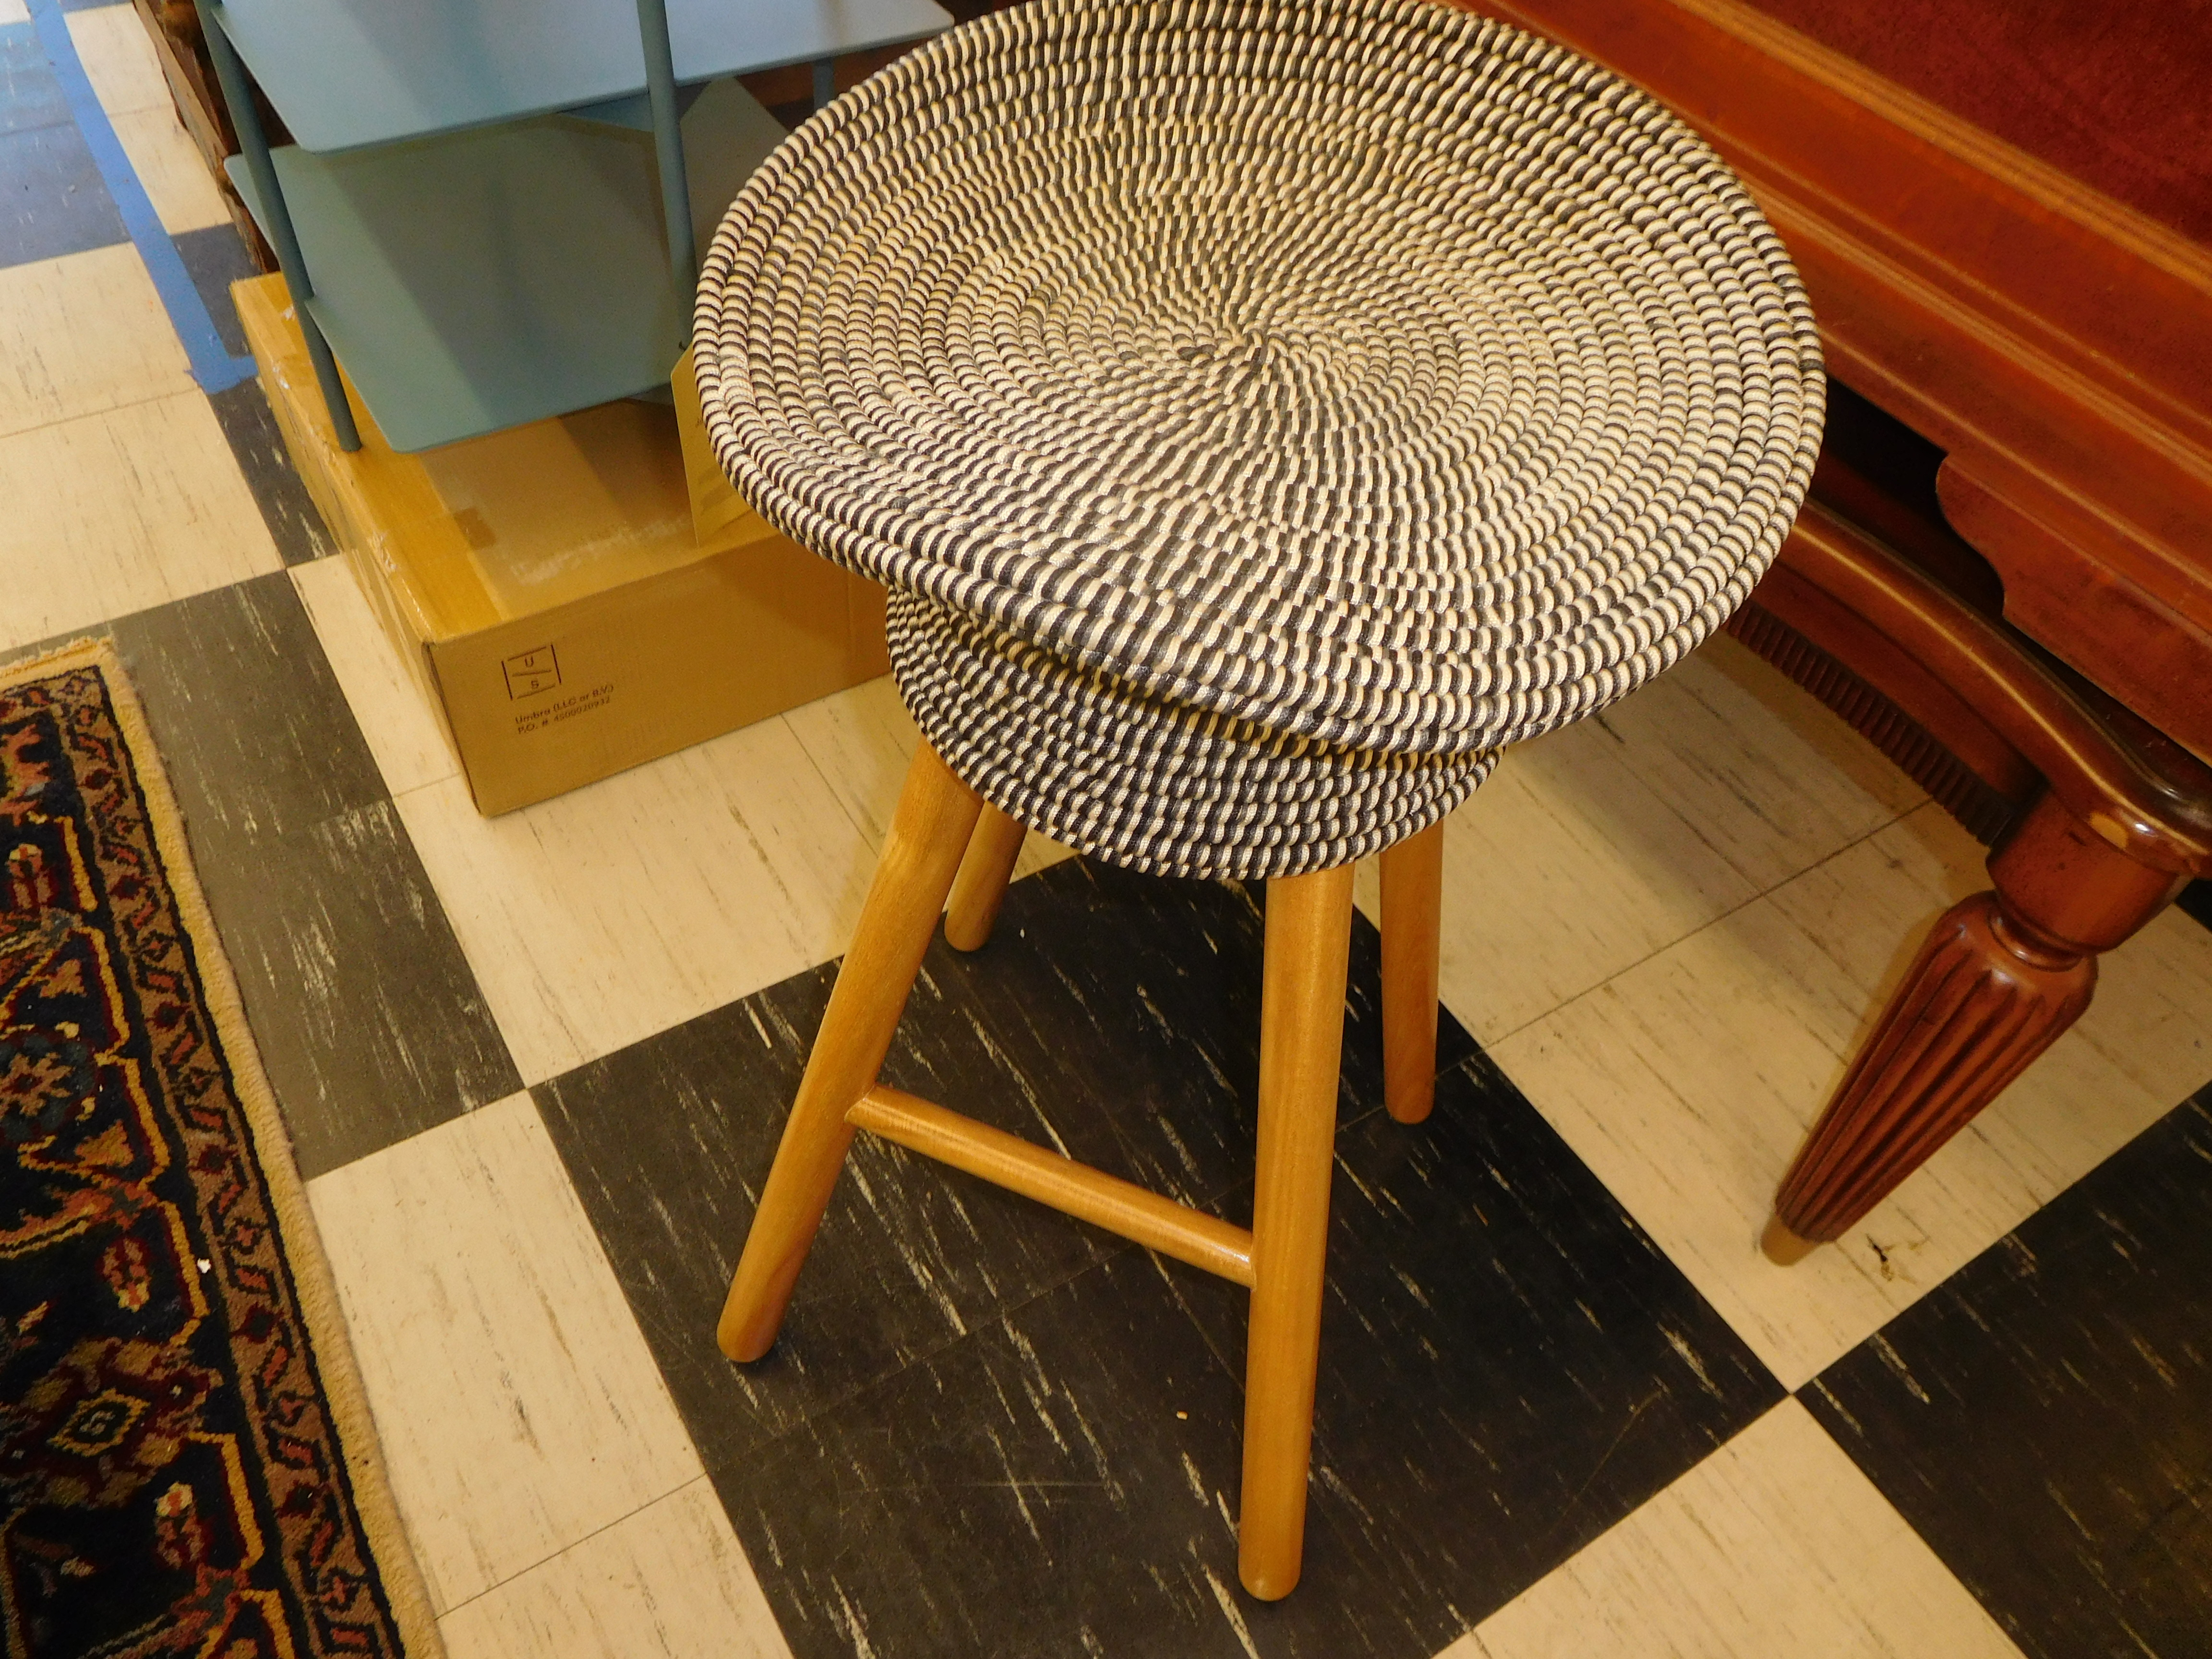 Wood Counter Stool with Grey Coiled Weave Seat, by Harry Allen